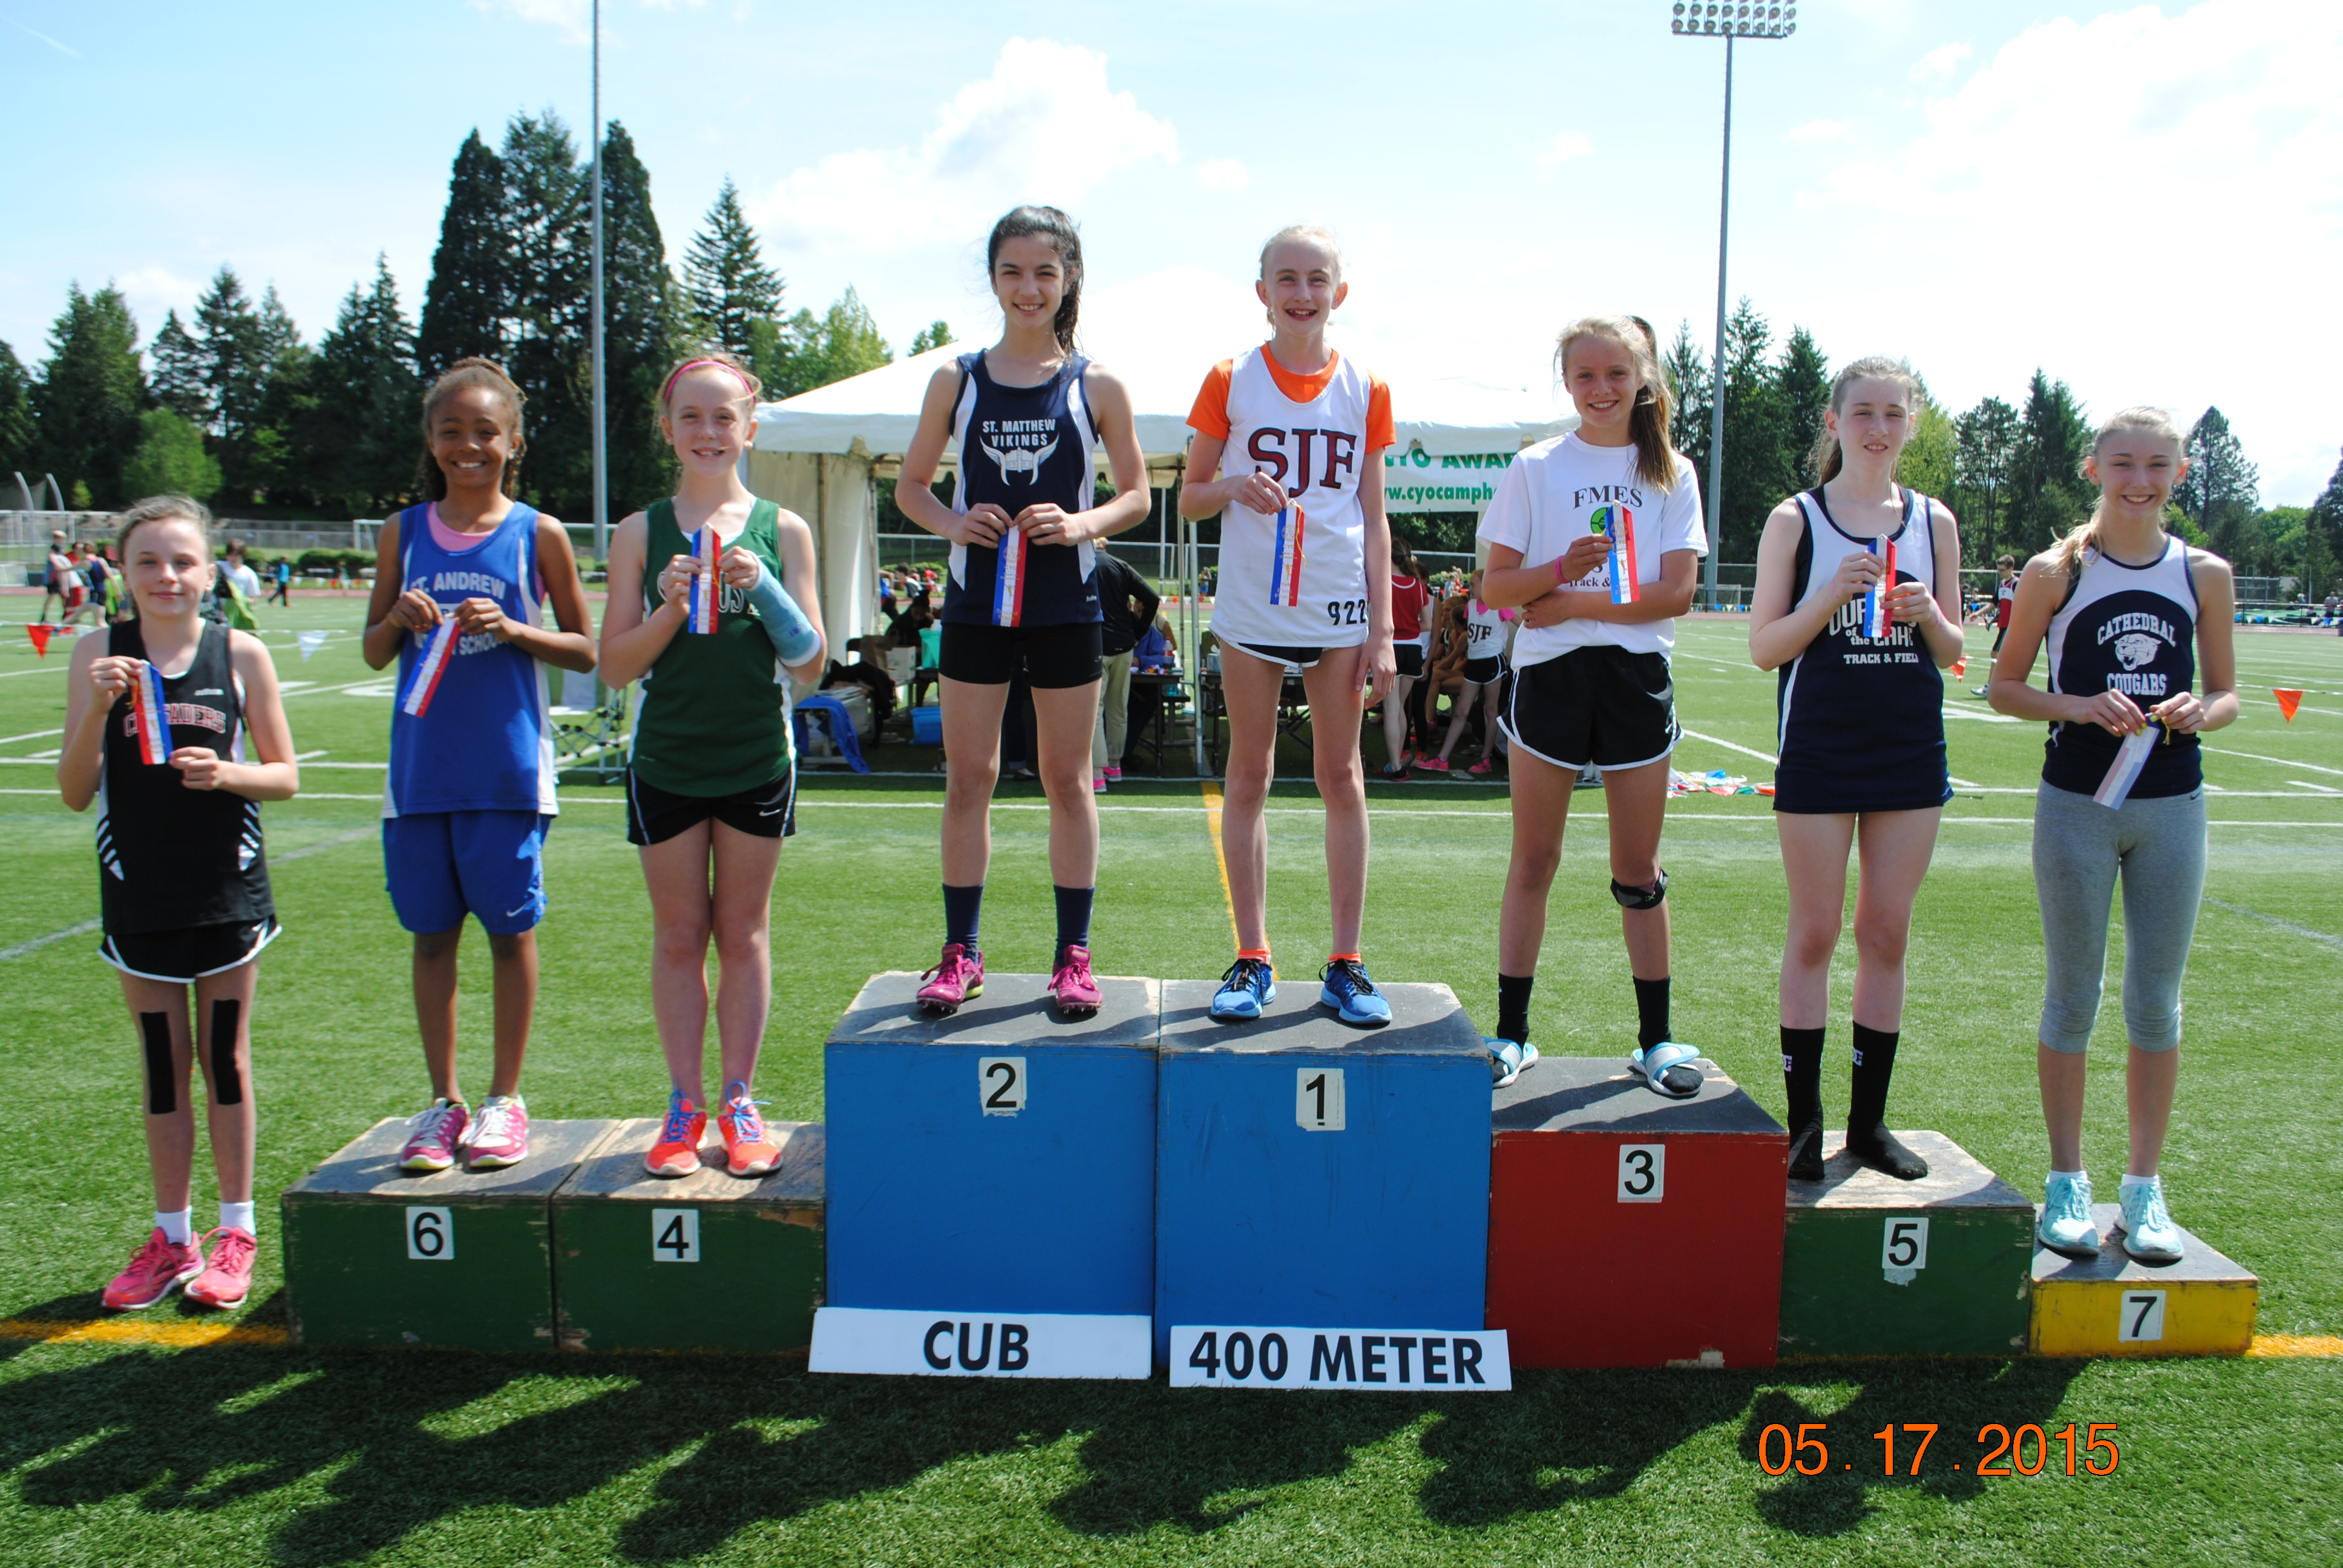 Cub Girl winners of the 400 Meter Dash at the CYO Meet of Champions May 2015